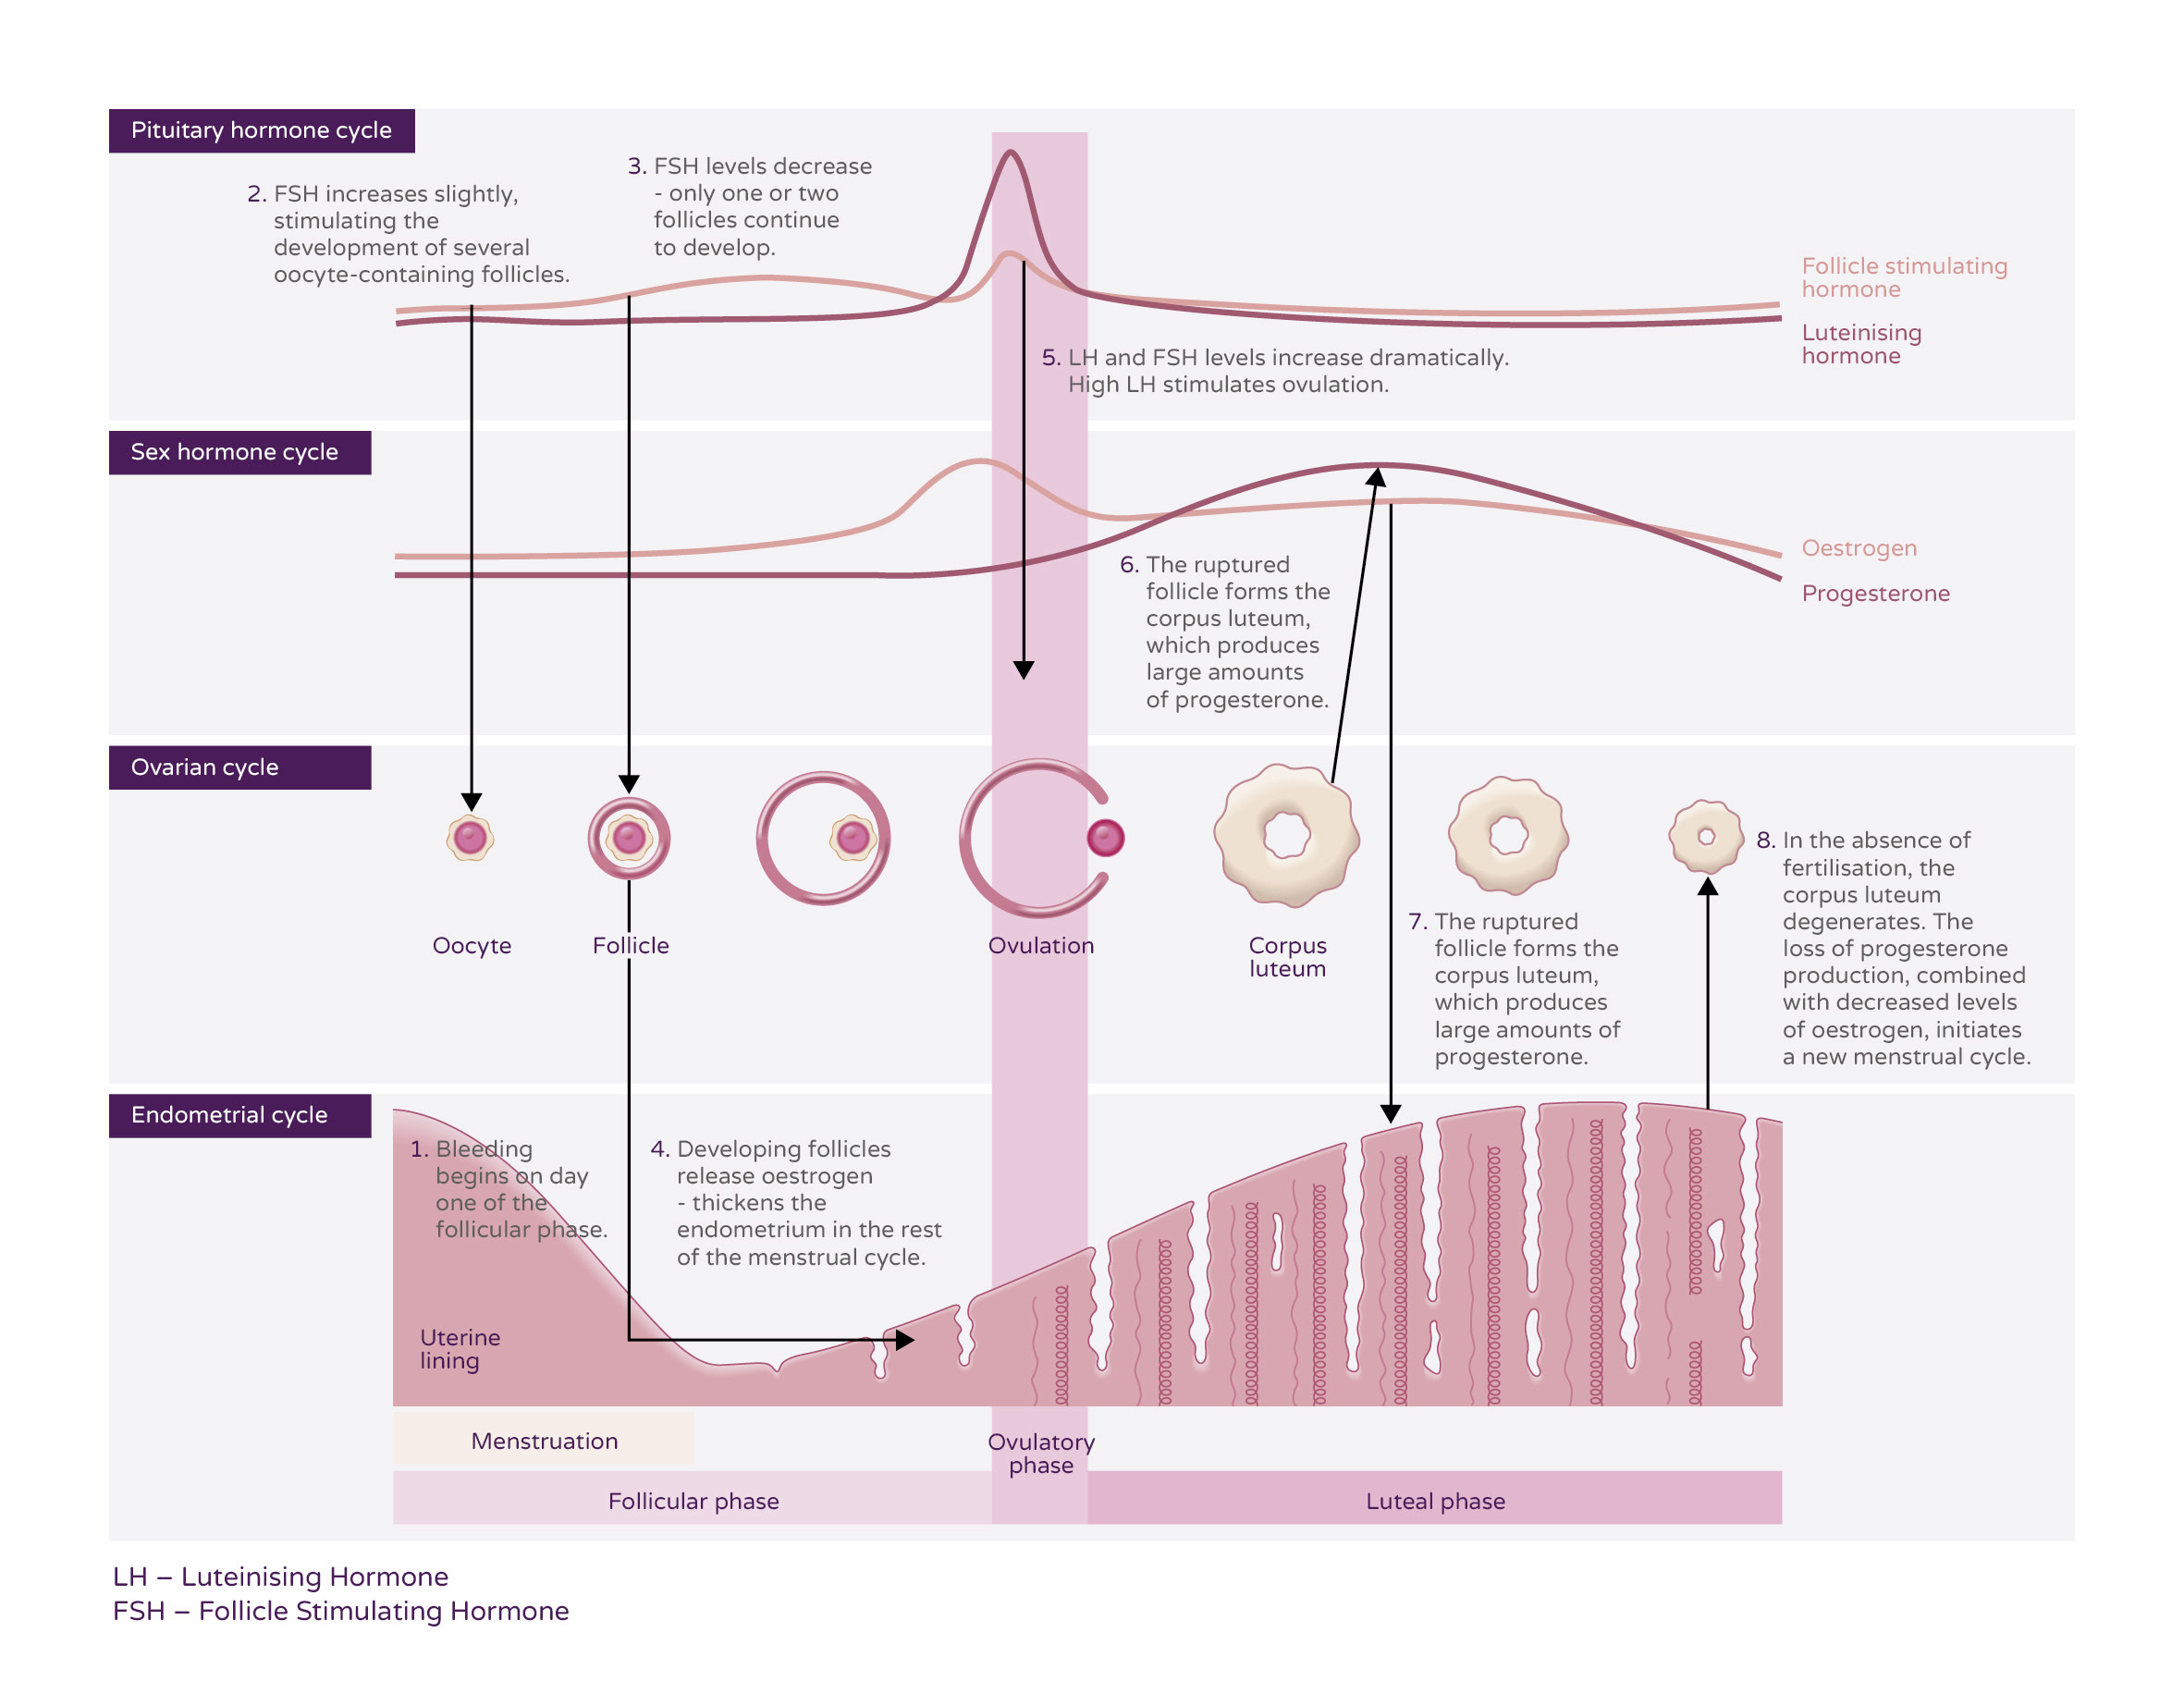 menstrual cycle diagram with ovulation chrysler town and country parts theory ellaone pharmacist uk